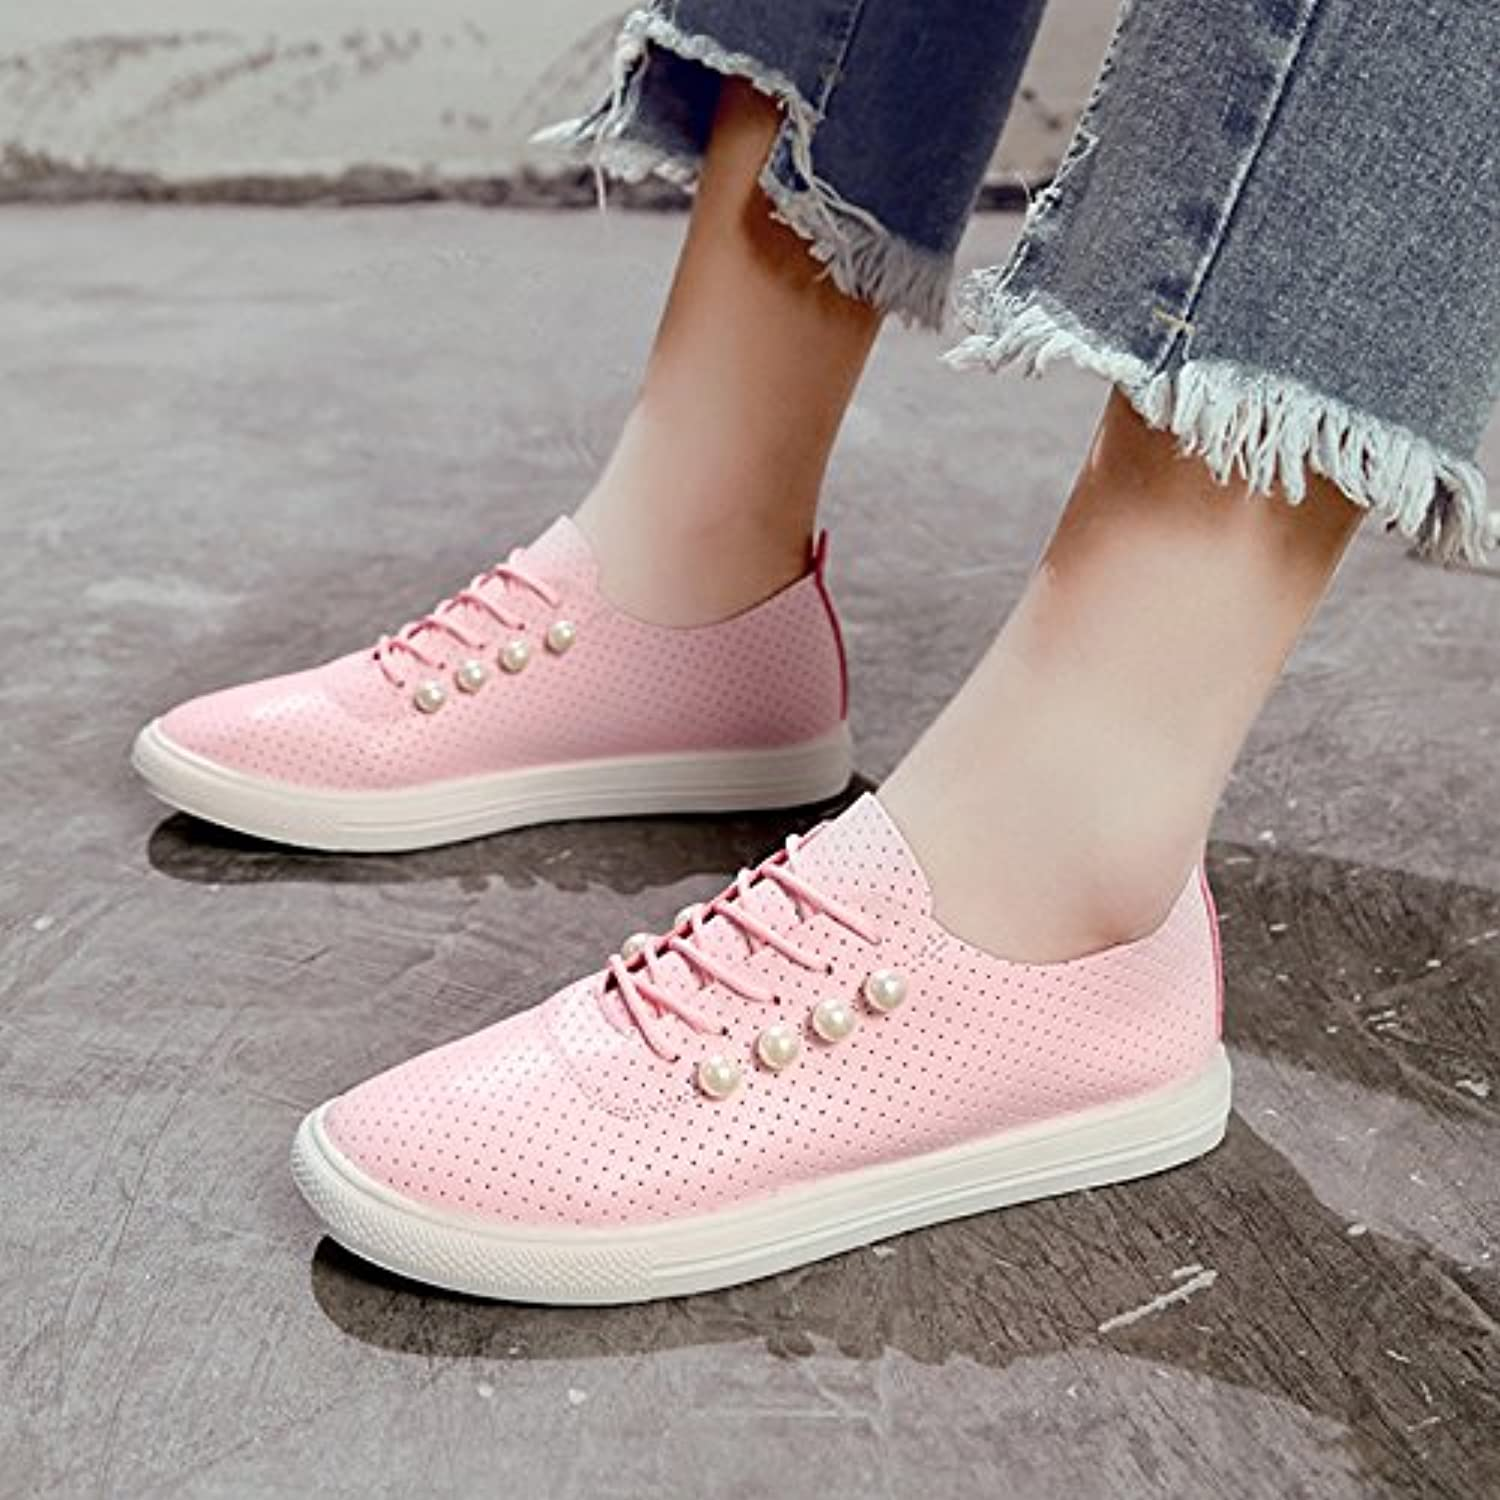 1e9a0cd3690 GAOLIM GAOLIM GAOLIM The Small White Shoes The Girl Spring Wild Flat-Bottomed  Canvas Shoes